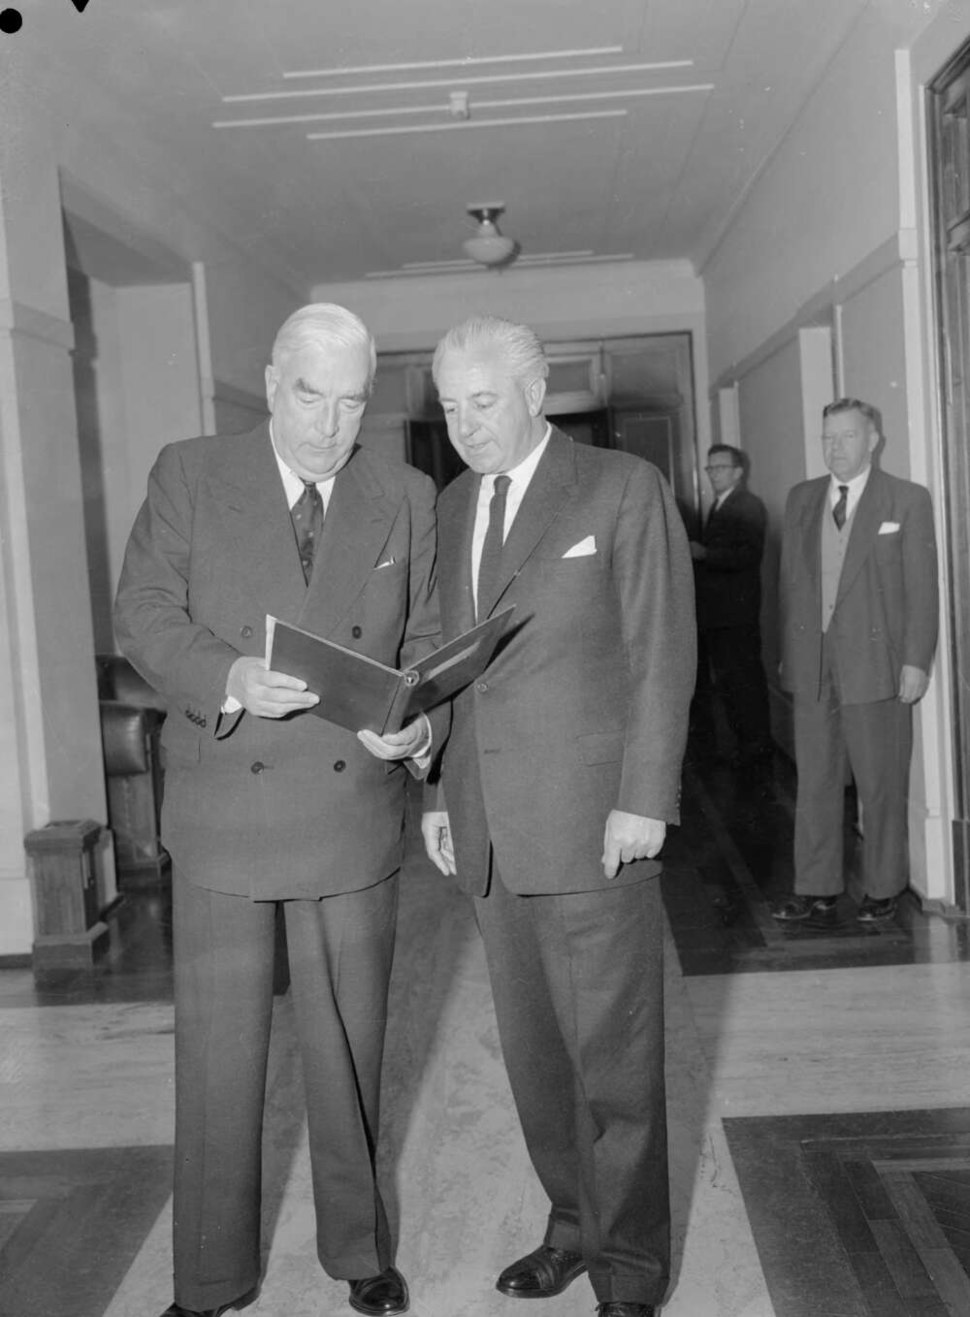 Holt and Menzies